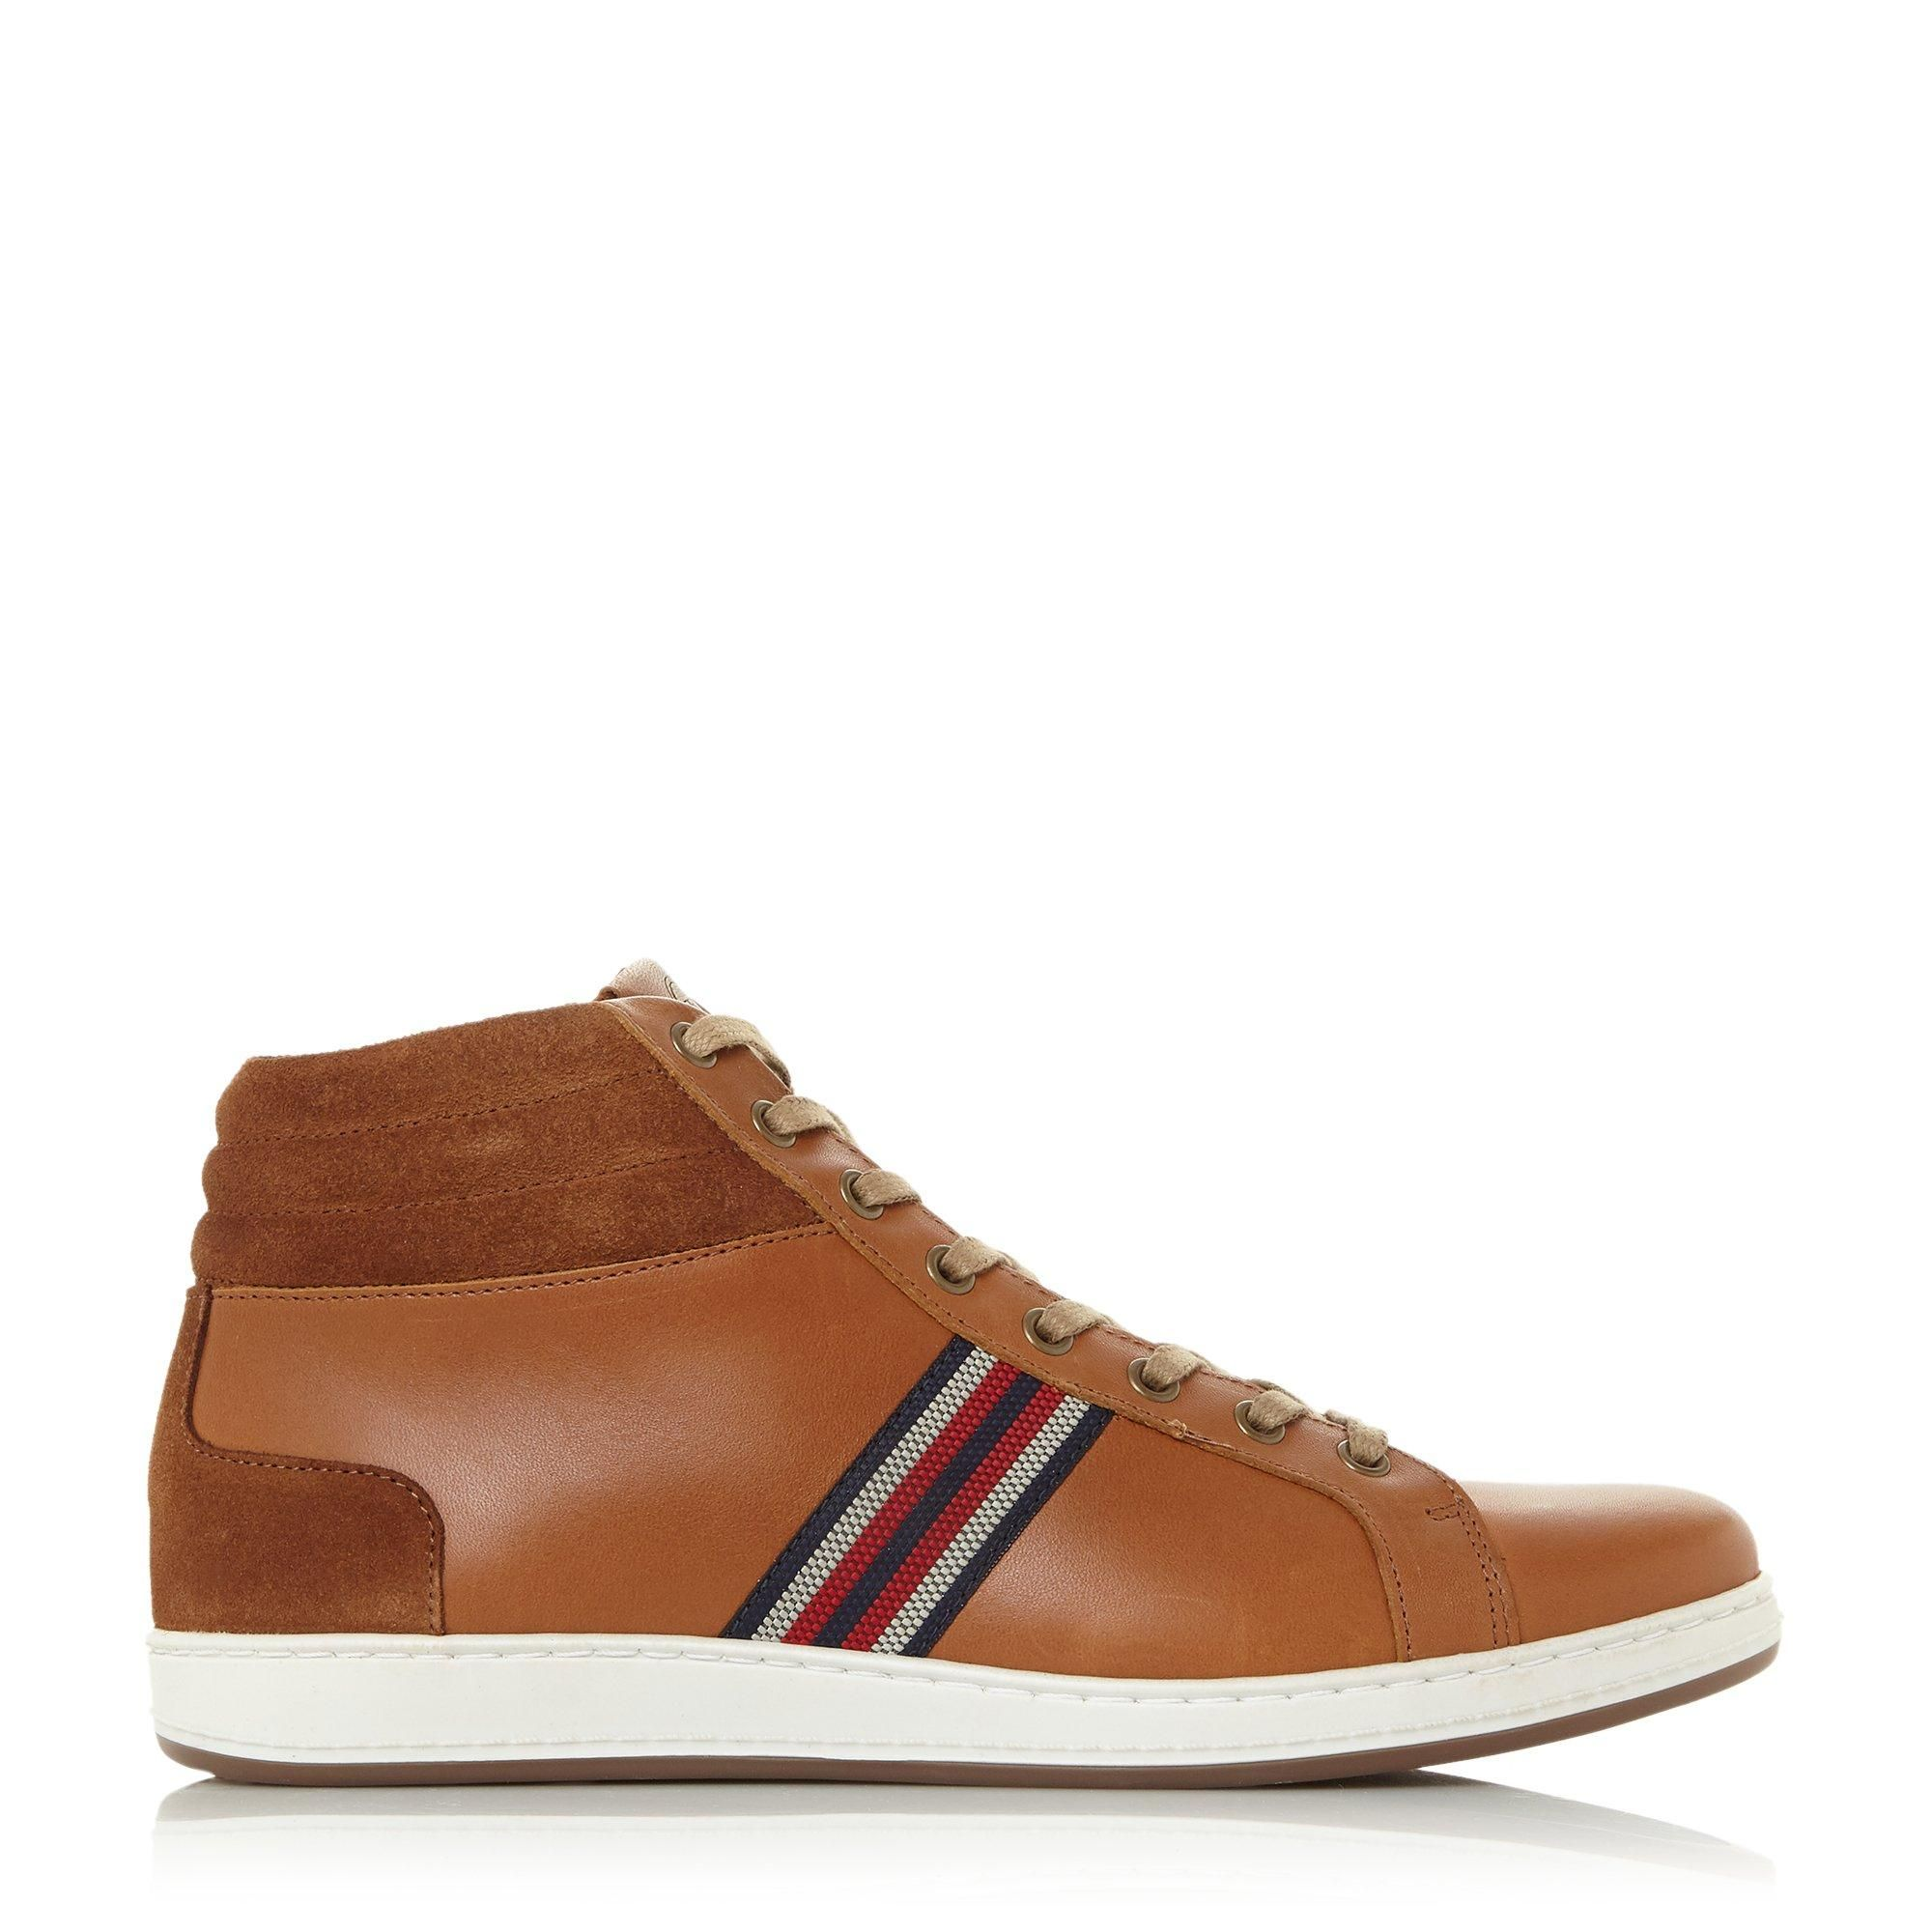 Dune Mens VANCOUVER Textured Panel High Top Trainers